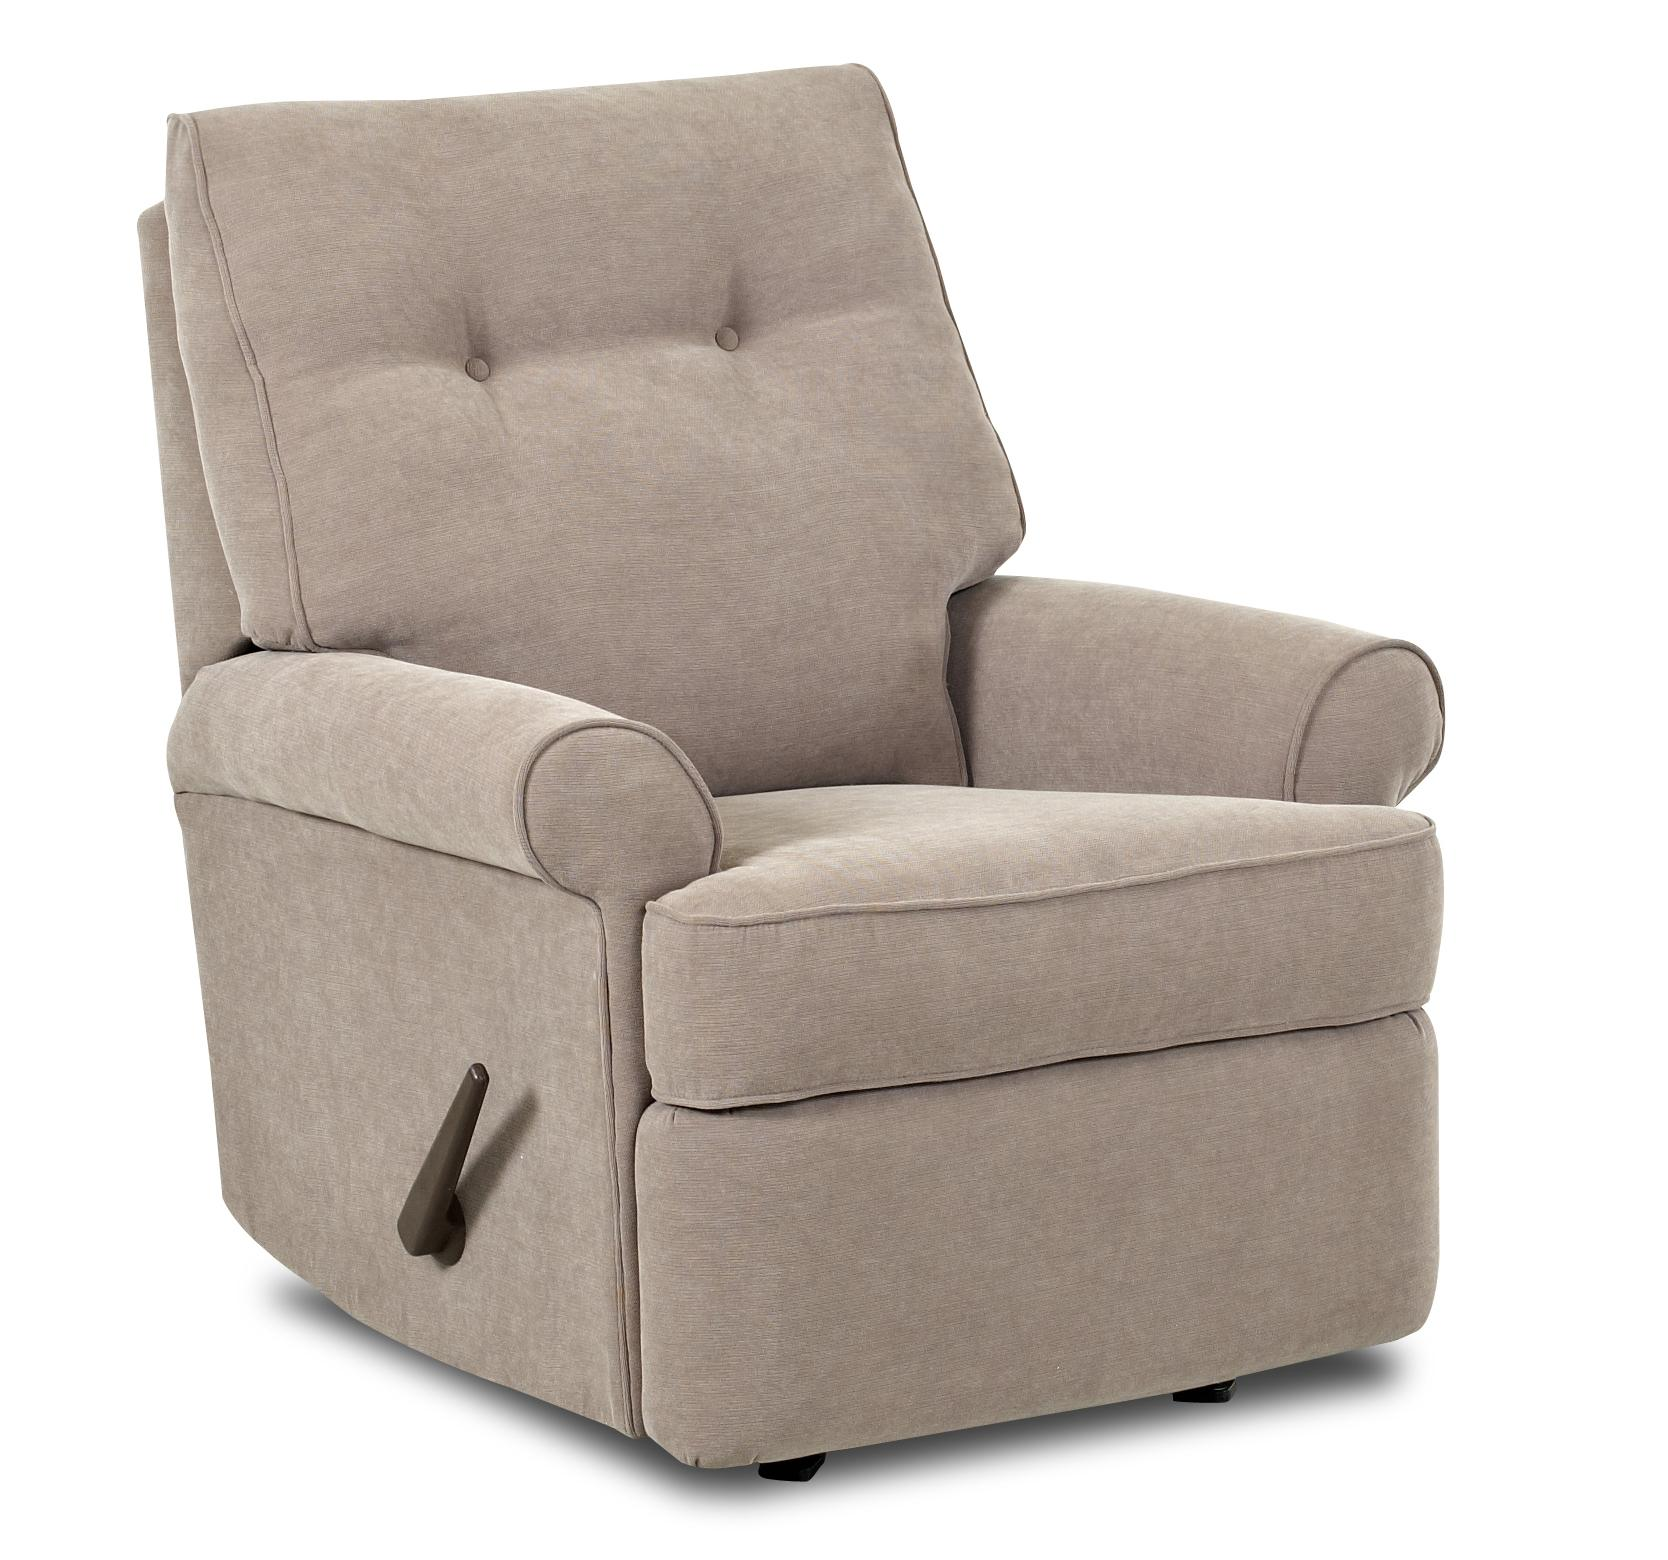 Image of: Simple Rocking Recliner Chair